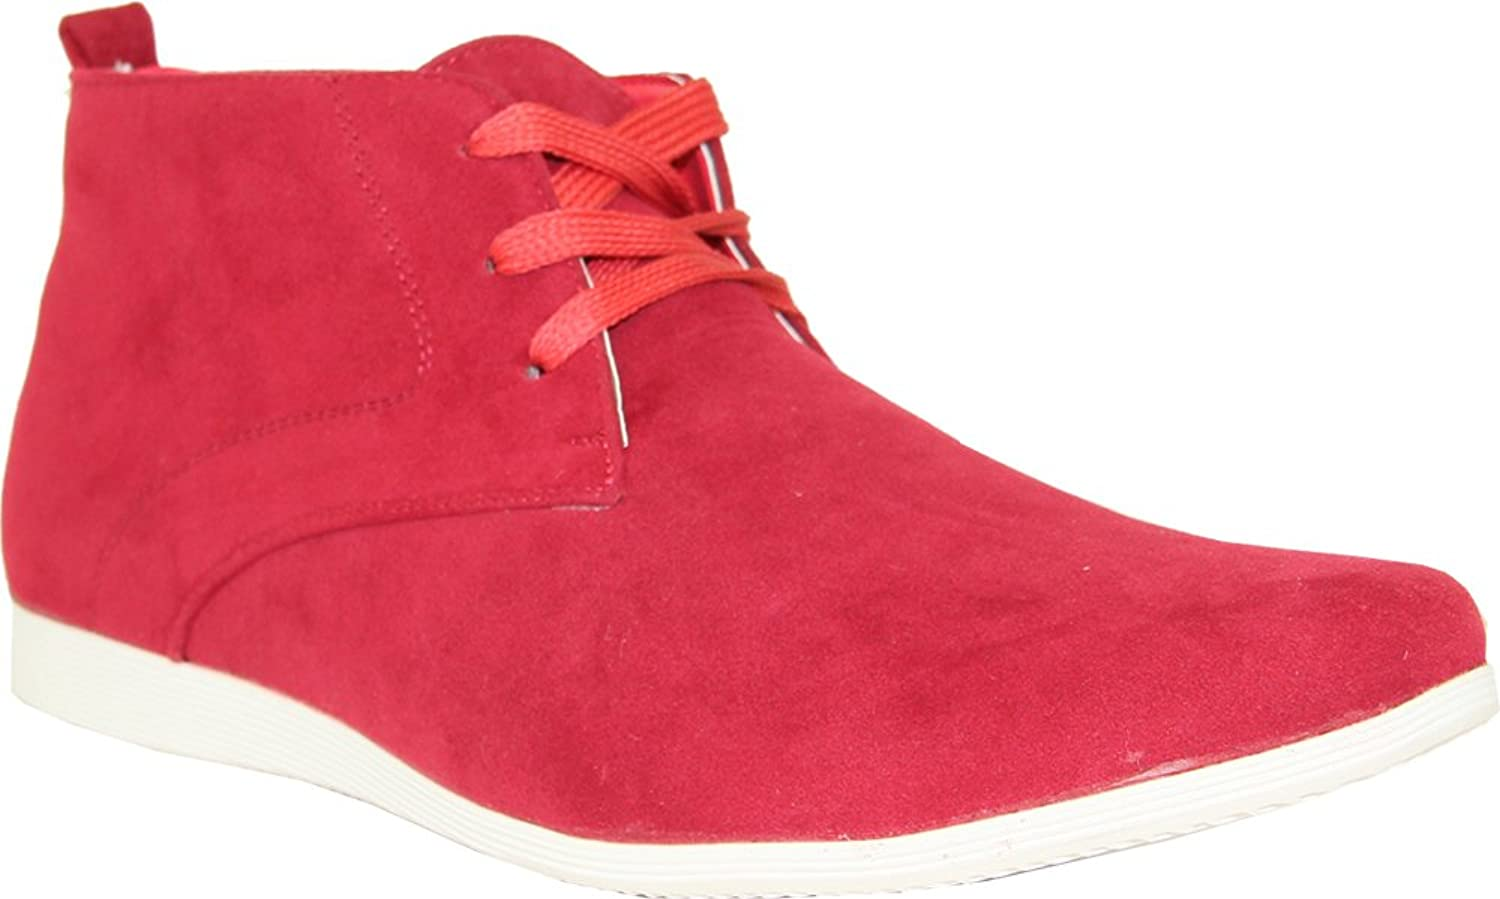 CORONADO Mens Casual Boots CODY9 Faux Suede Soft Comfort Desert Boots with an Almond Toe Red 9M  B00FNB8CT2